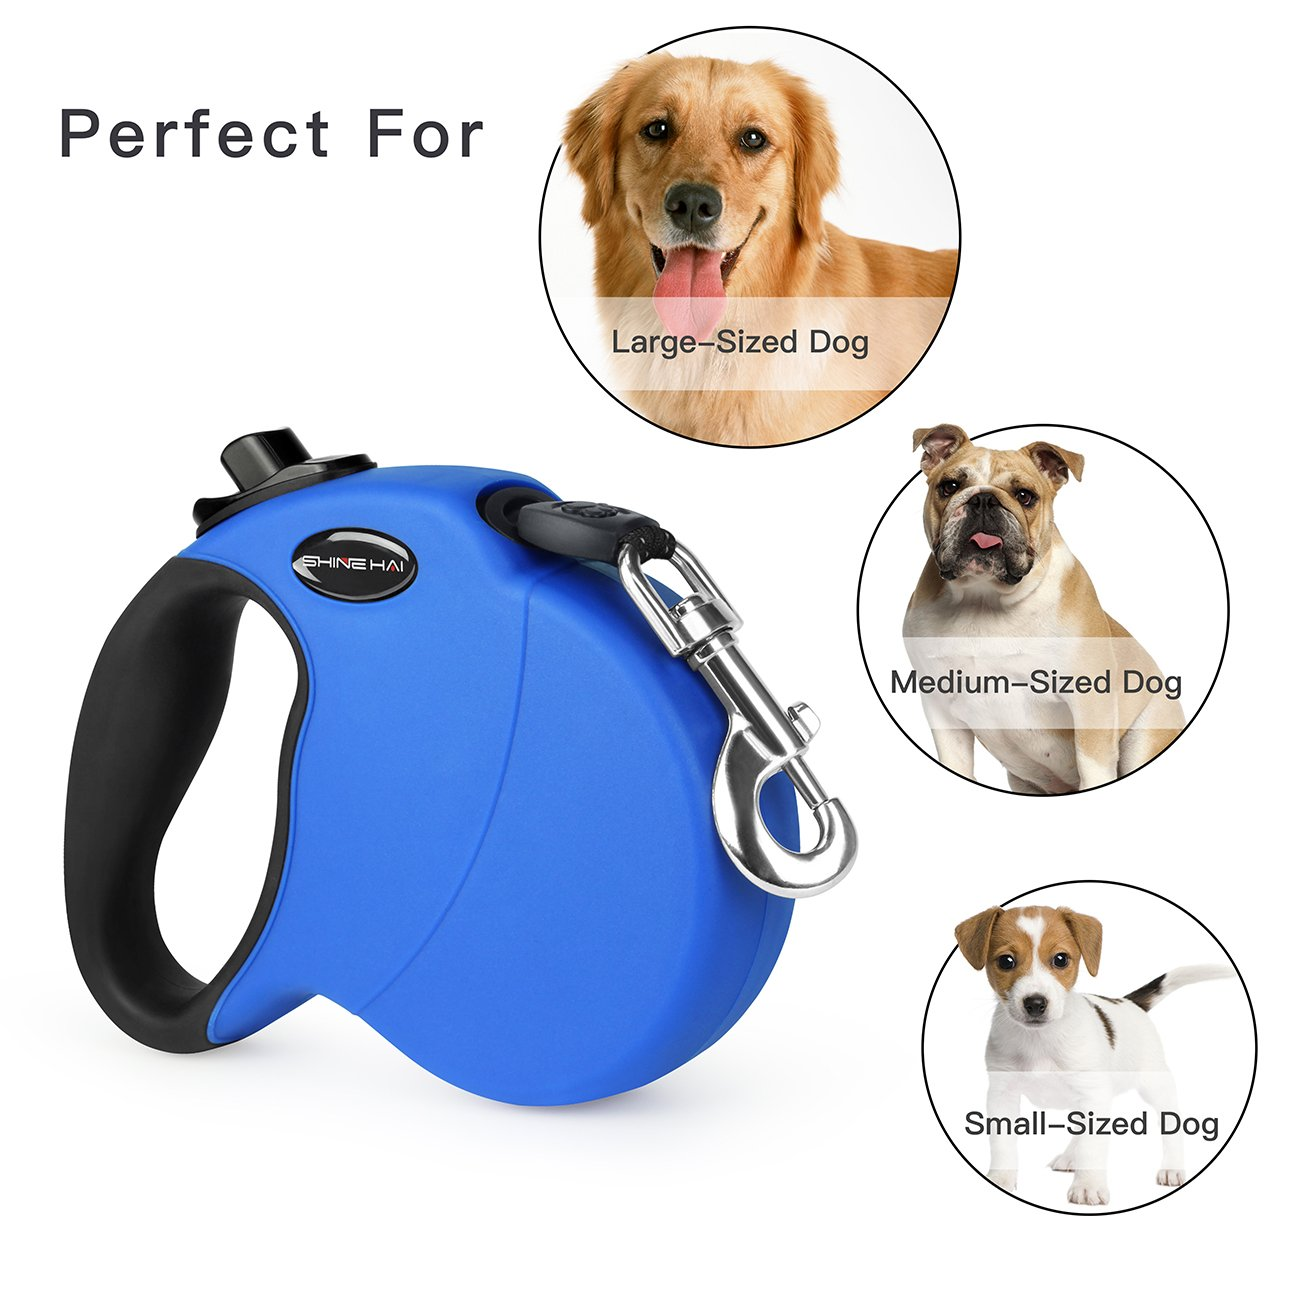 SHINE HAI Retractable Dog Leash, 16ft Dog Walking Leash for Large Medium Small Dog Up to 110lbs, Break & Lock System, Reflective Ribbon Cord, Blue by SHINE HAI (Image #4)